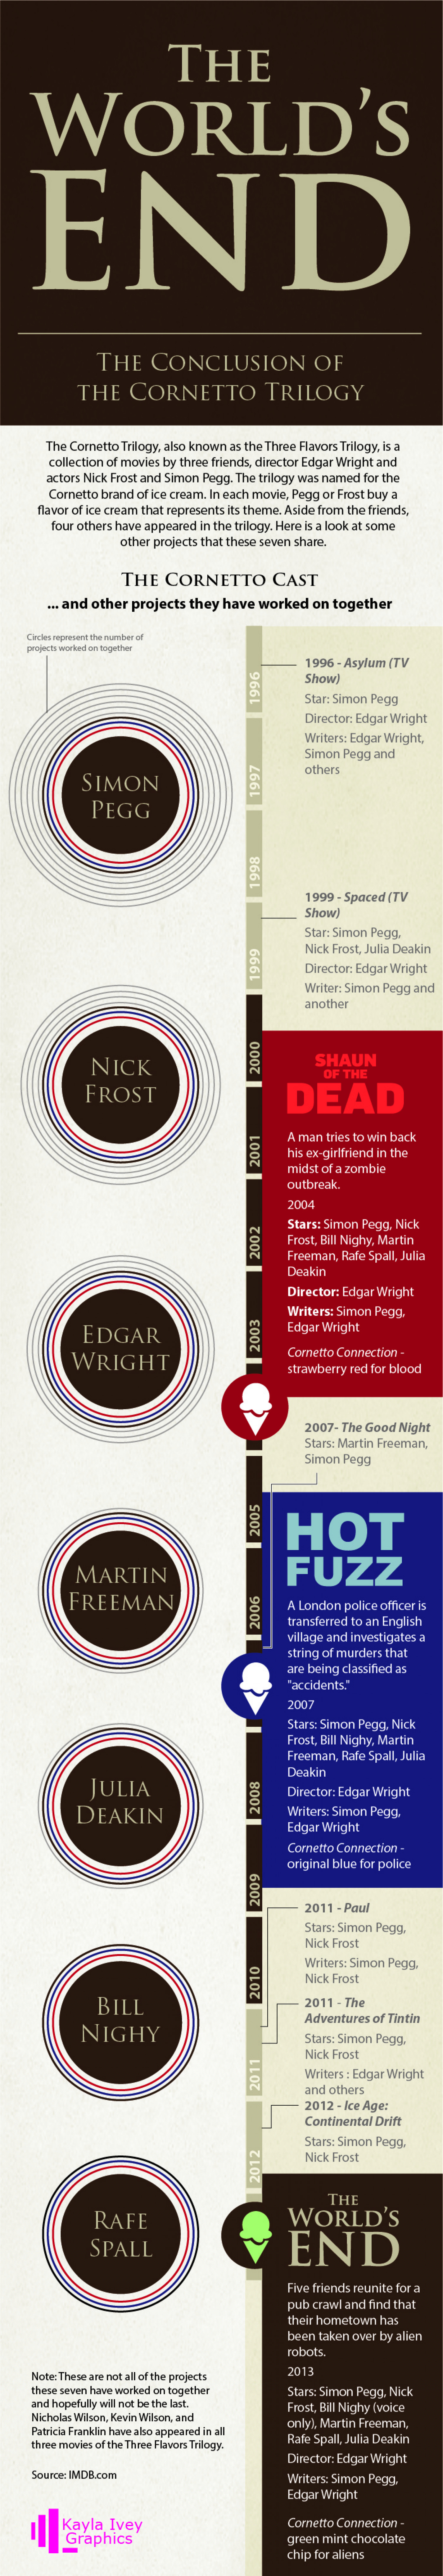 The world's end: the conclusion of the Cornetto Trilogy Infographic